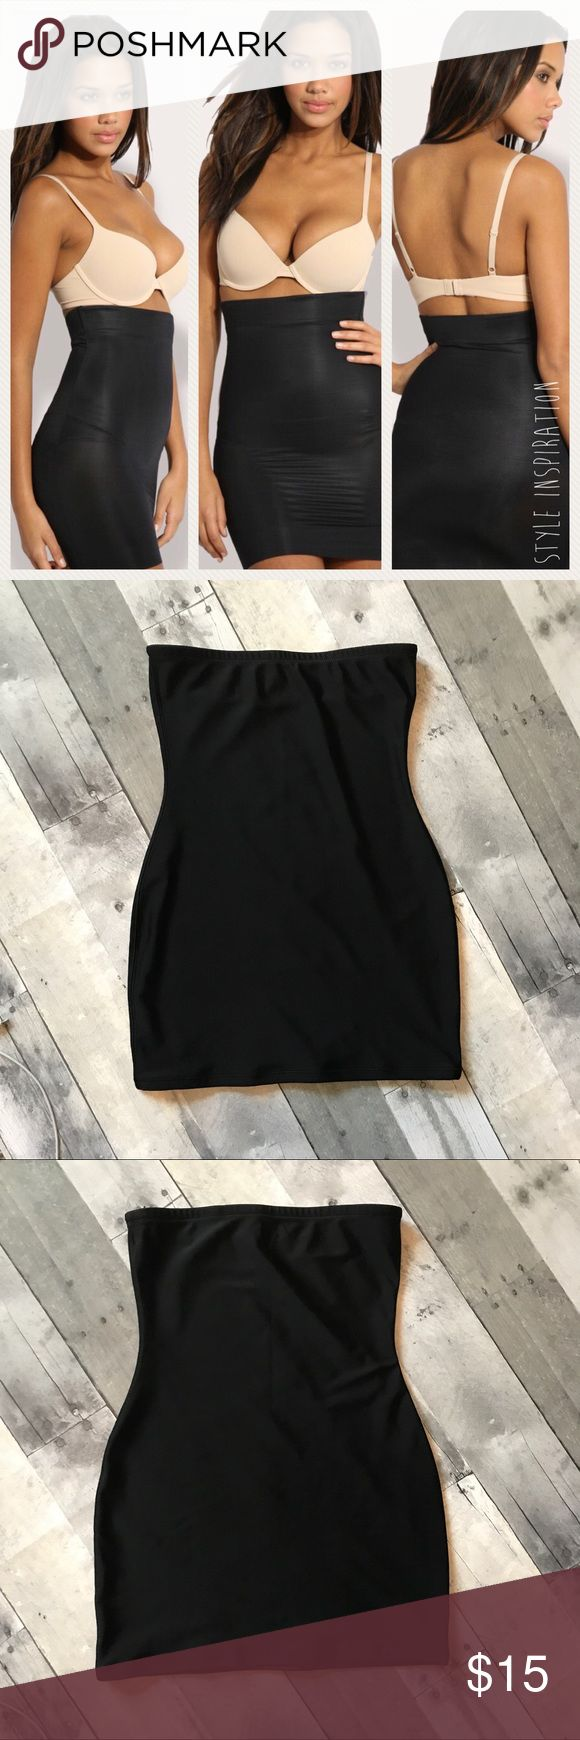 "Black Strapless Shapewear Half Slip, Size M There is a no slip strip at the top to keep shaper in place.  Worn maybe once or twice. There is a 3/4 inch place in the hem where it has started to come un-sewn. It's an easy fix. See photo.  Body and Lining 86% Polyester 14% Elastane  *All measurements are approximate. I do my best to be accurate. Across Top 12.5"" Waist 11.25"" Hips 15.25"" Across Bottom 15.25"" Intimates & Sleepwear Shapewear"